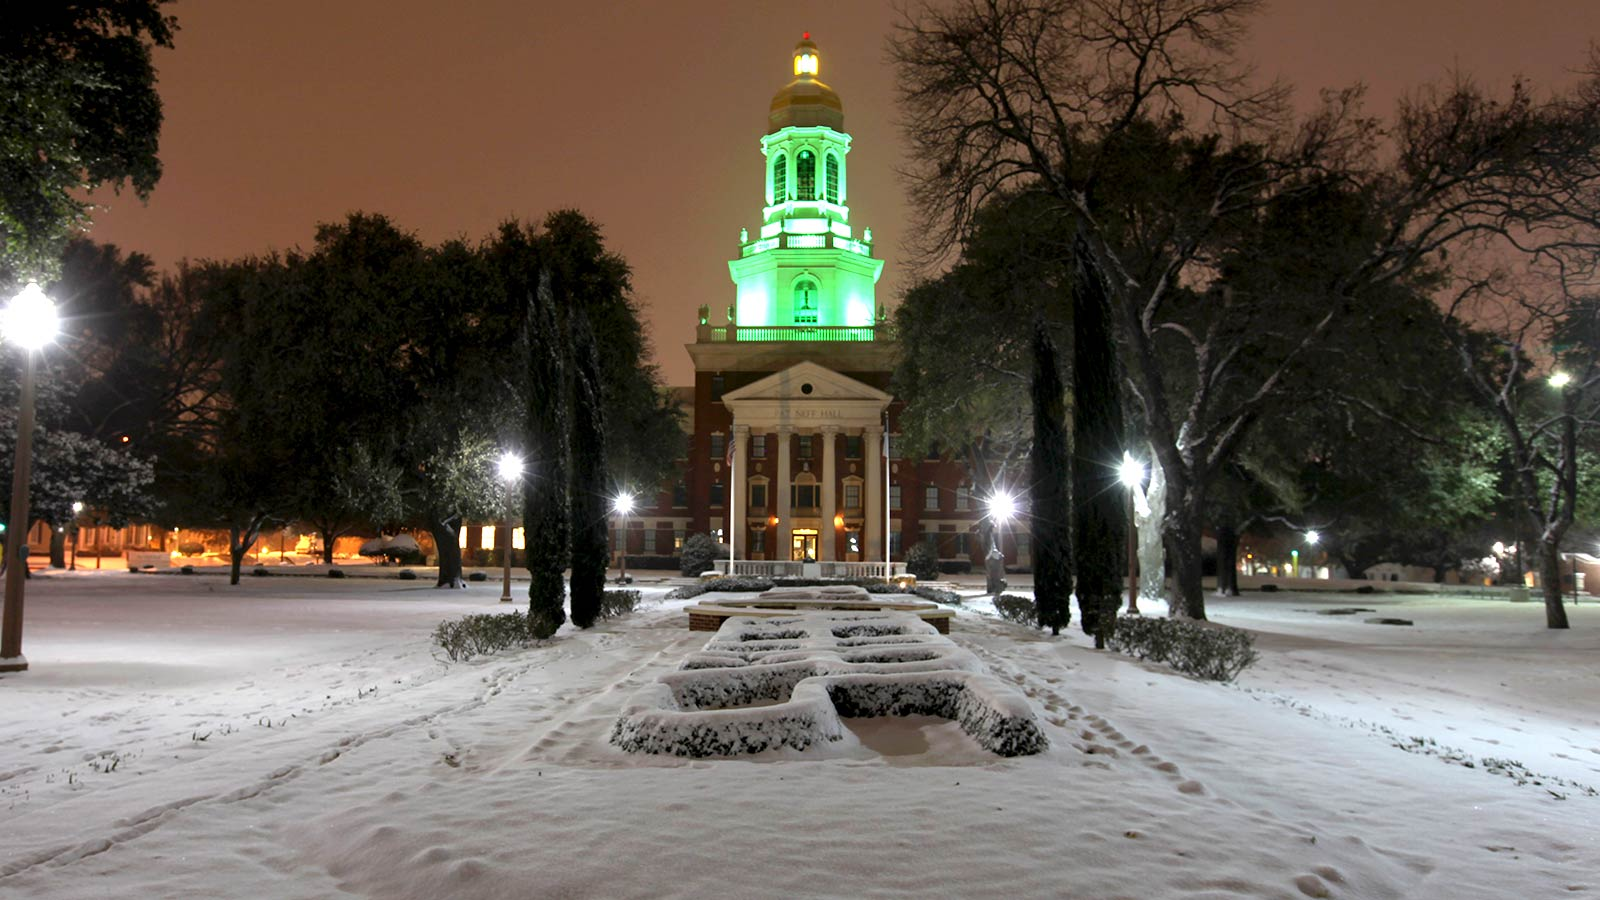 Occasionally, Waco receives a dusting of snow that gives Pat Neff Hall and Founders Mall a wintry beauty. The green lit dome reflects another  home athletic victory.